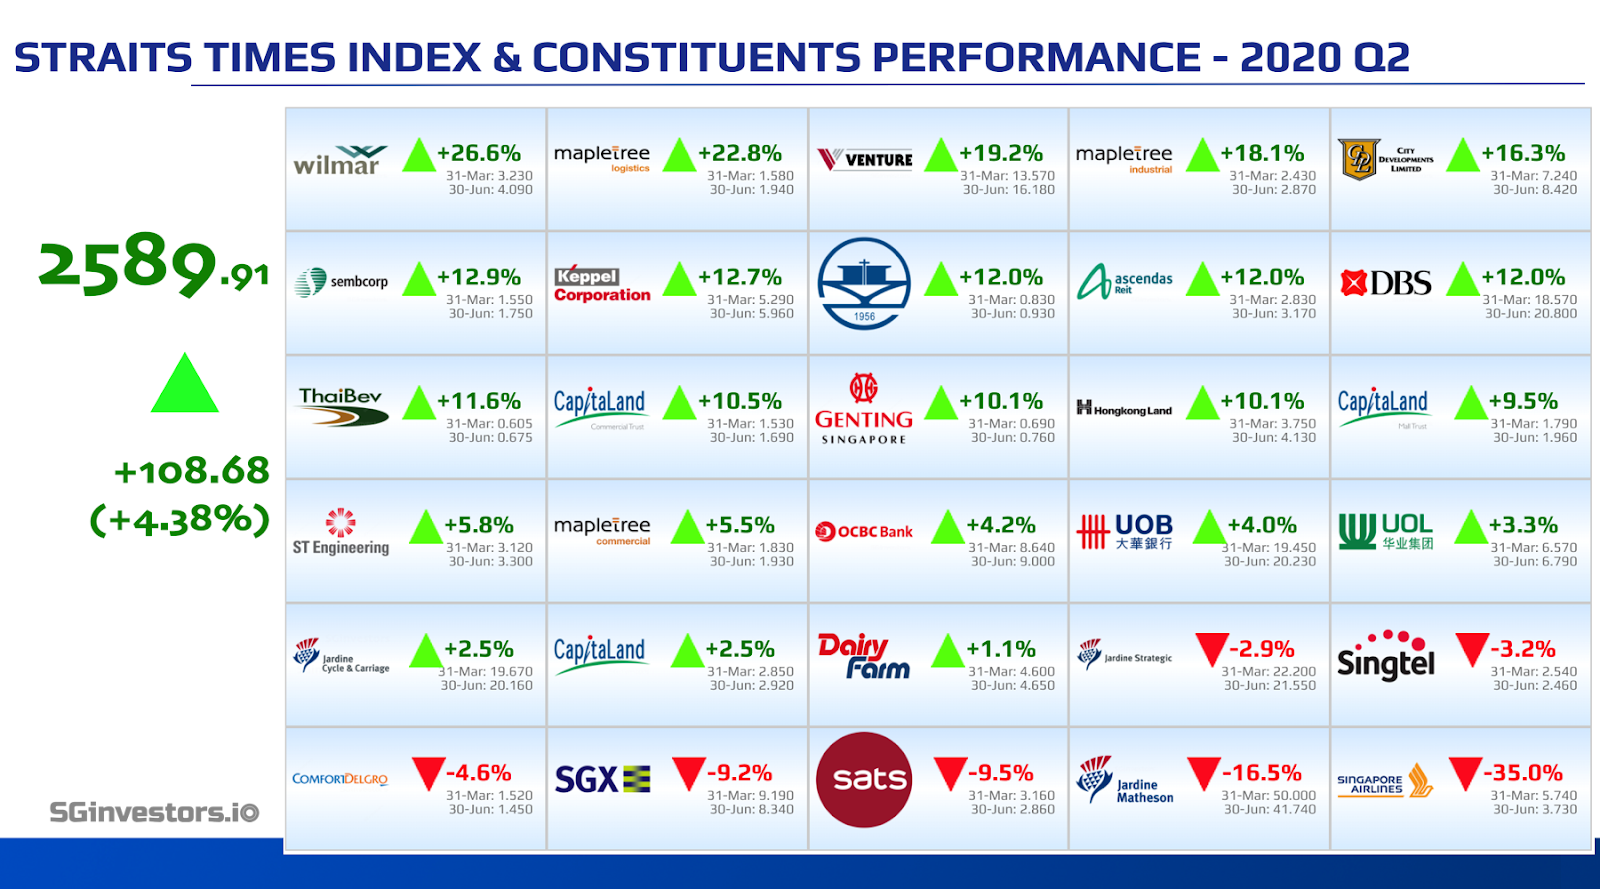 Performance of Straits Times Index (STI) Constituents in 2020 Q2